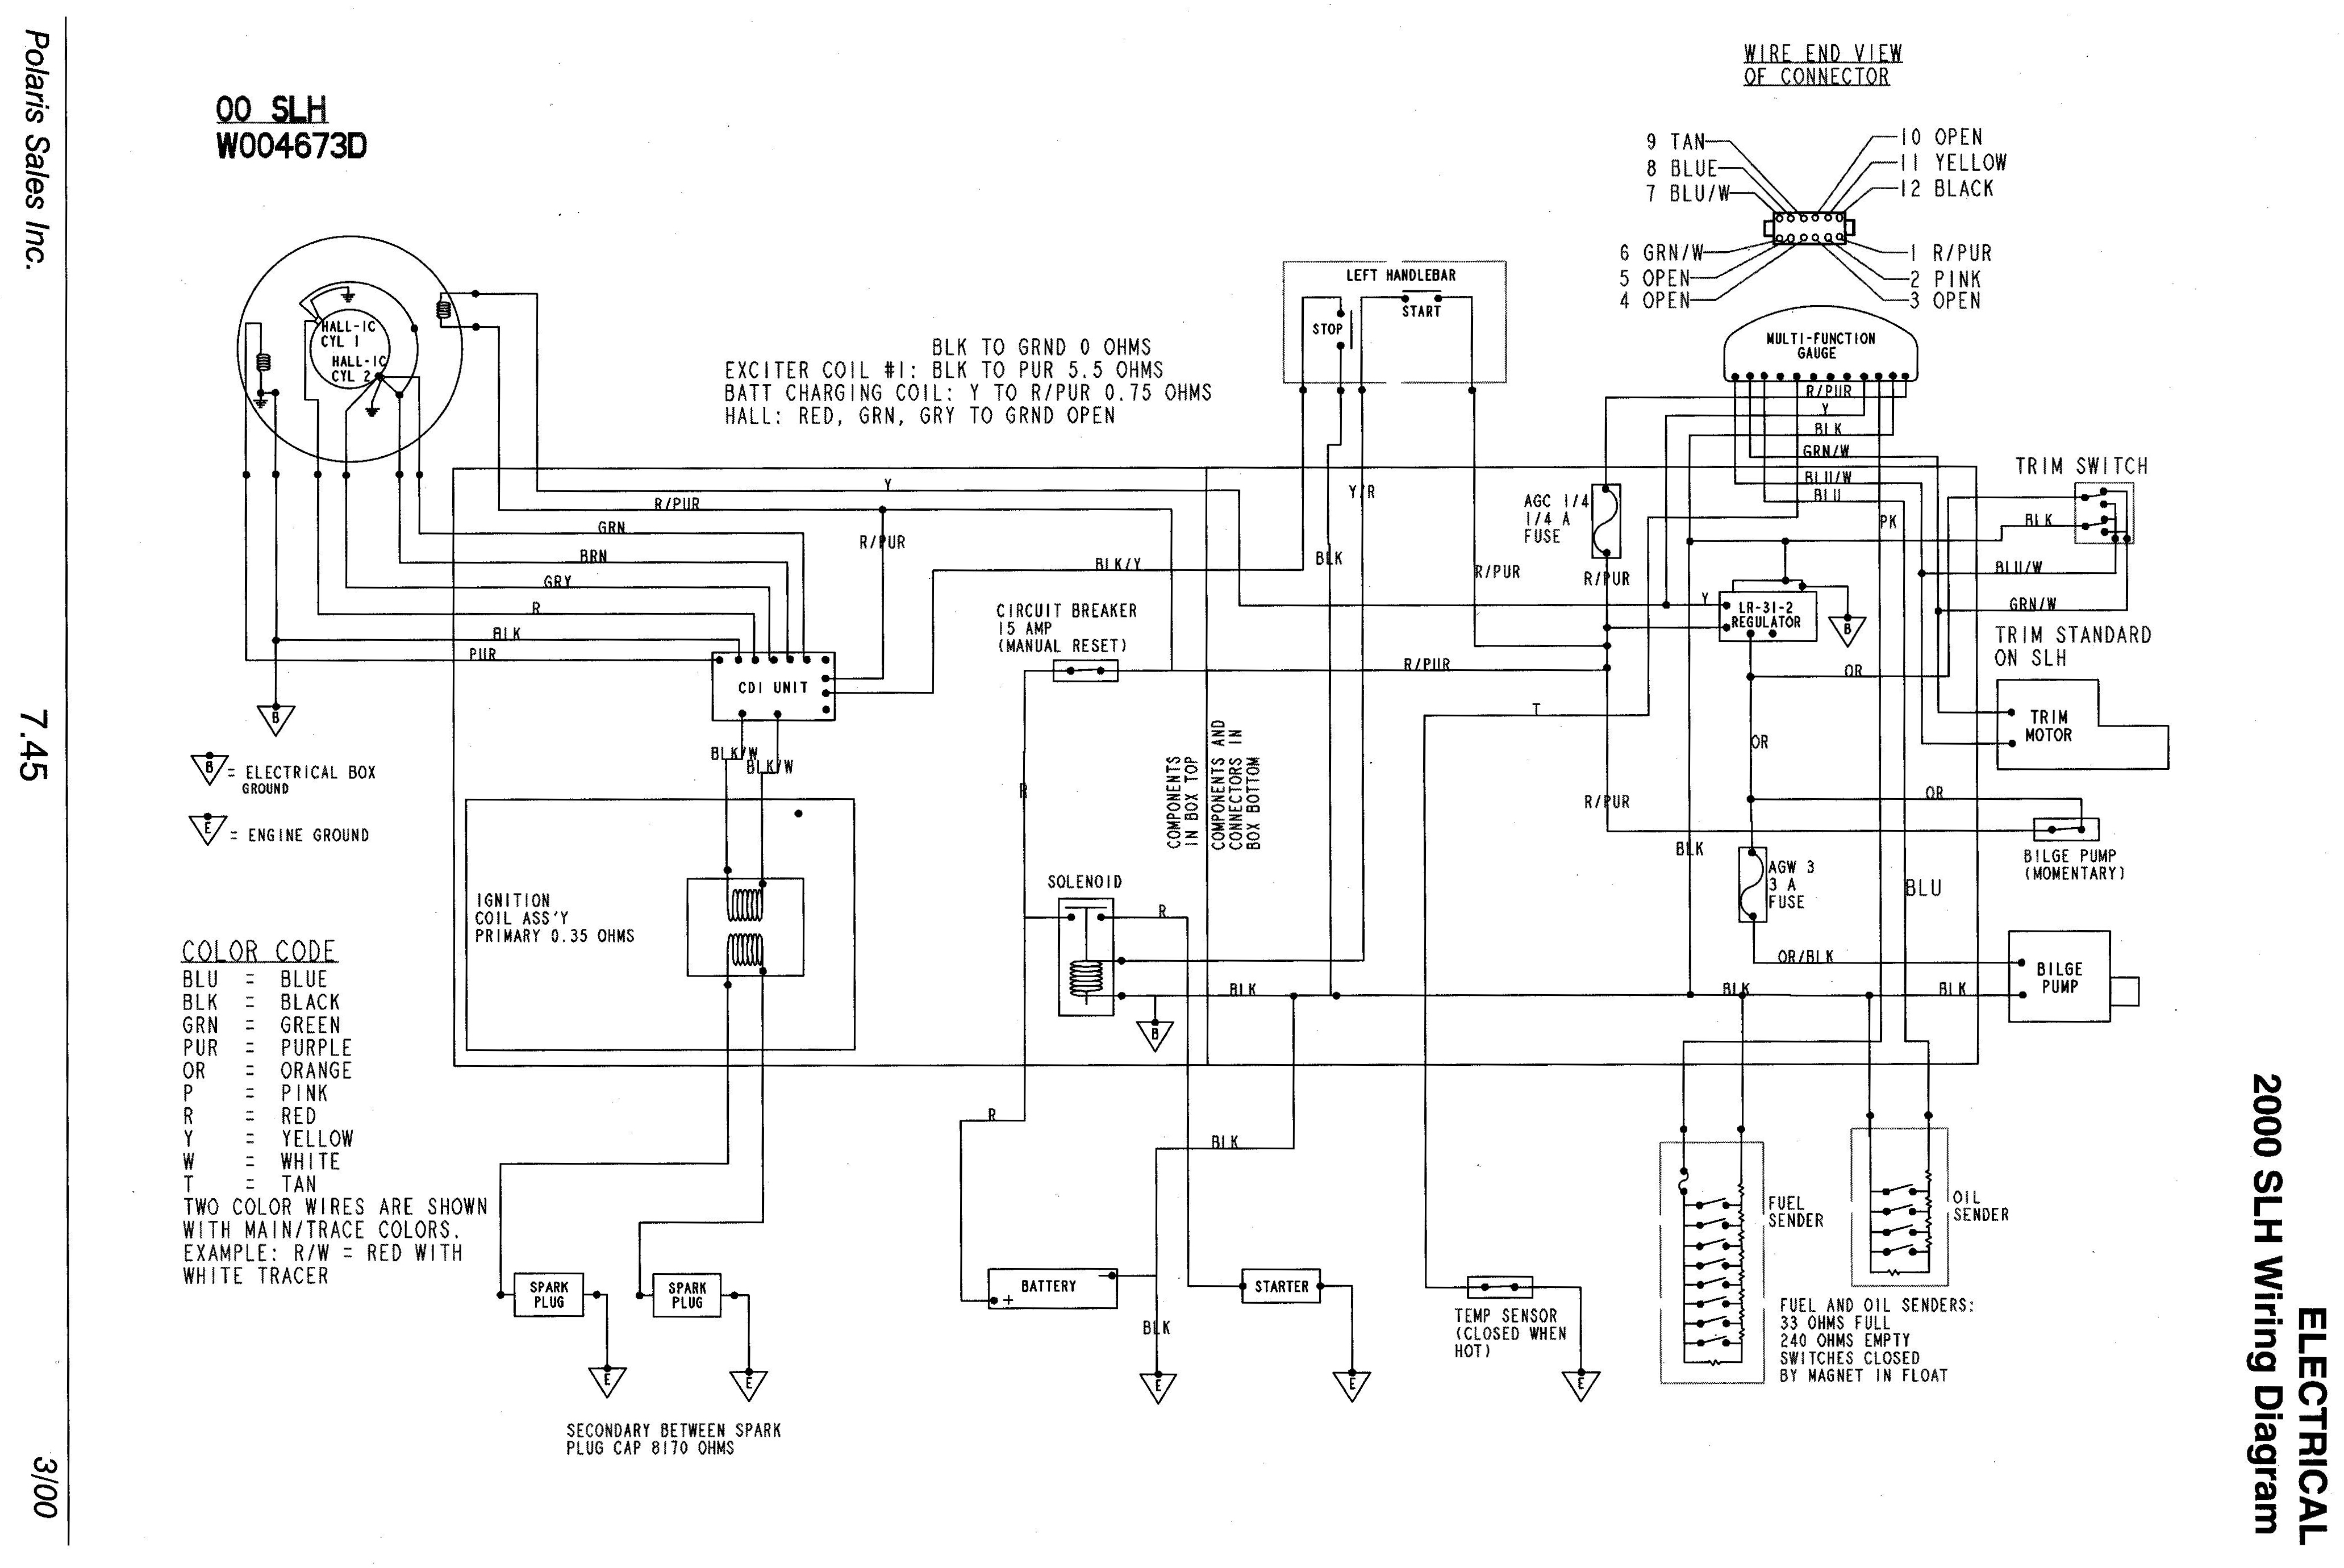 B003EJ5ZUE as well Dodge Stereo Wiring Diagram further Sale additionally LM12 High power audio  lifier circuit   60 100W   21358 in addition Polaris Predator 50 Wiring Diagram. on car stereo regulator